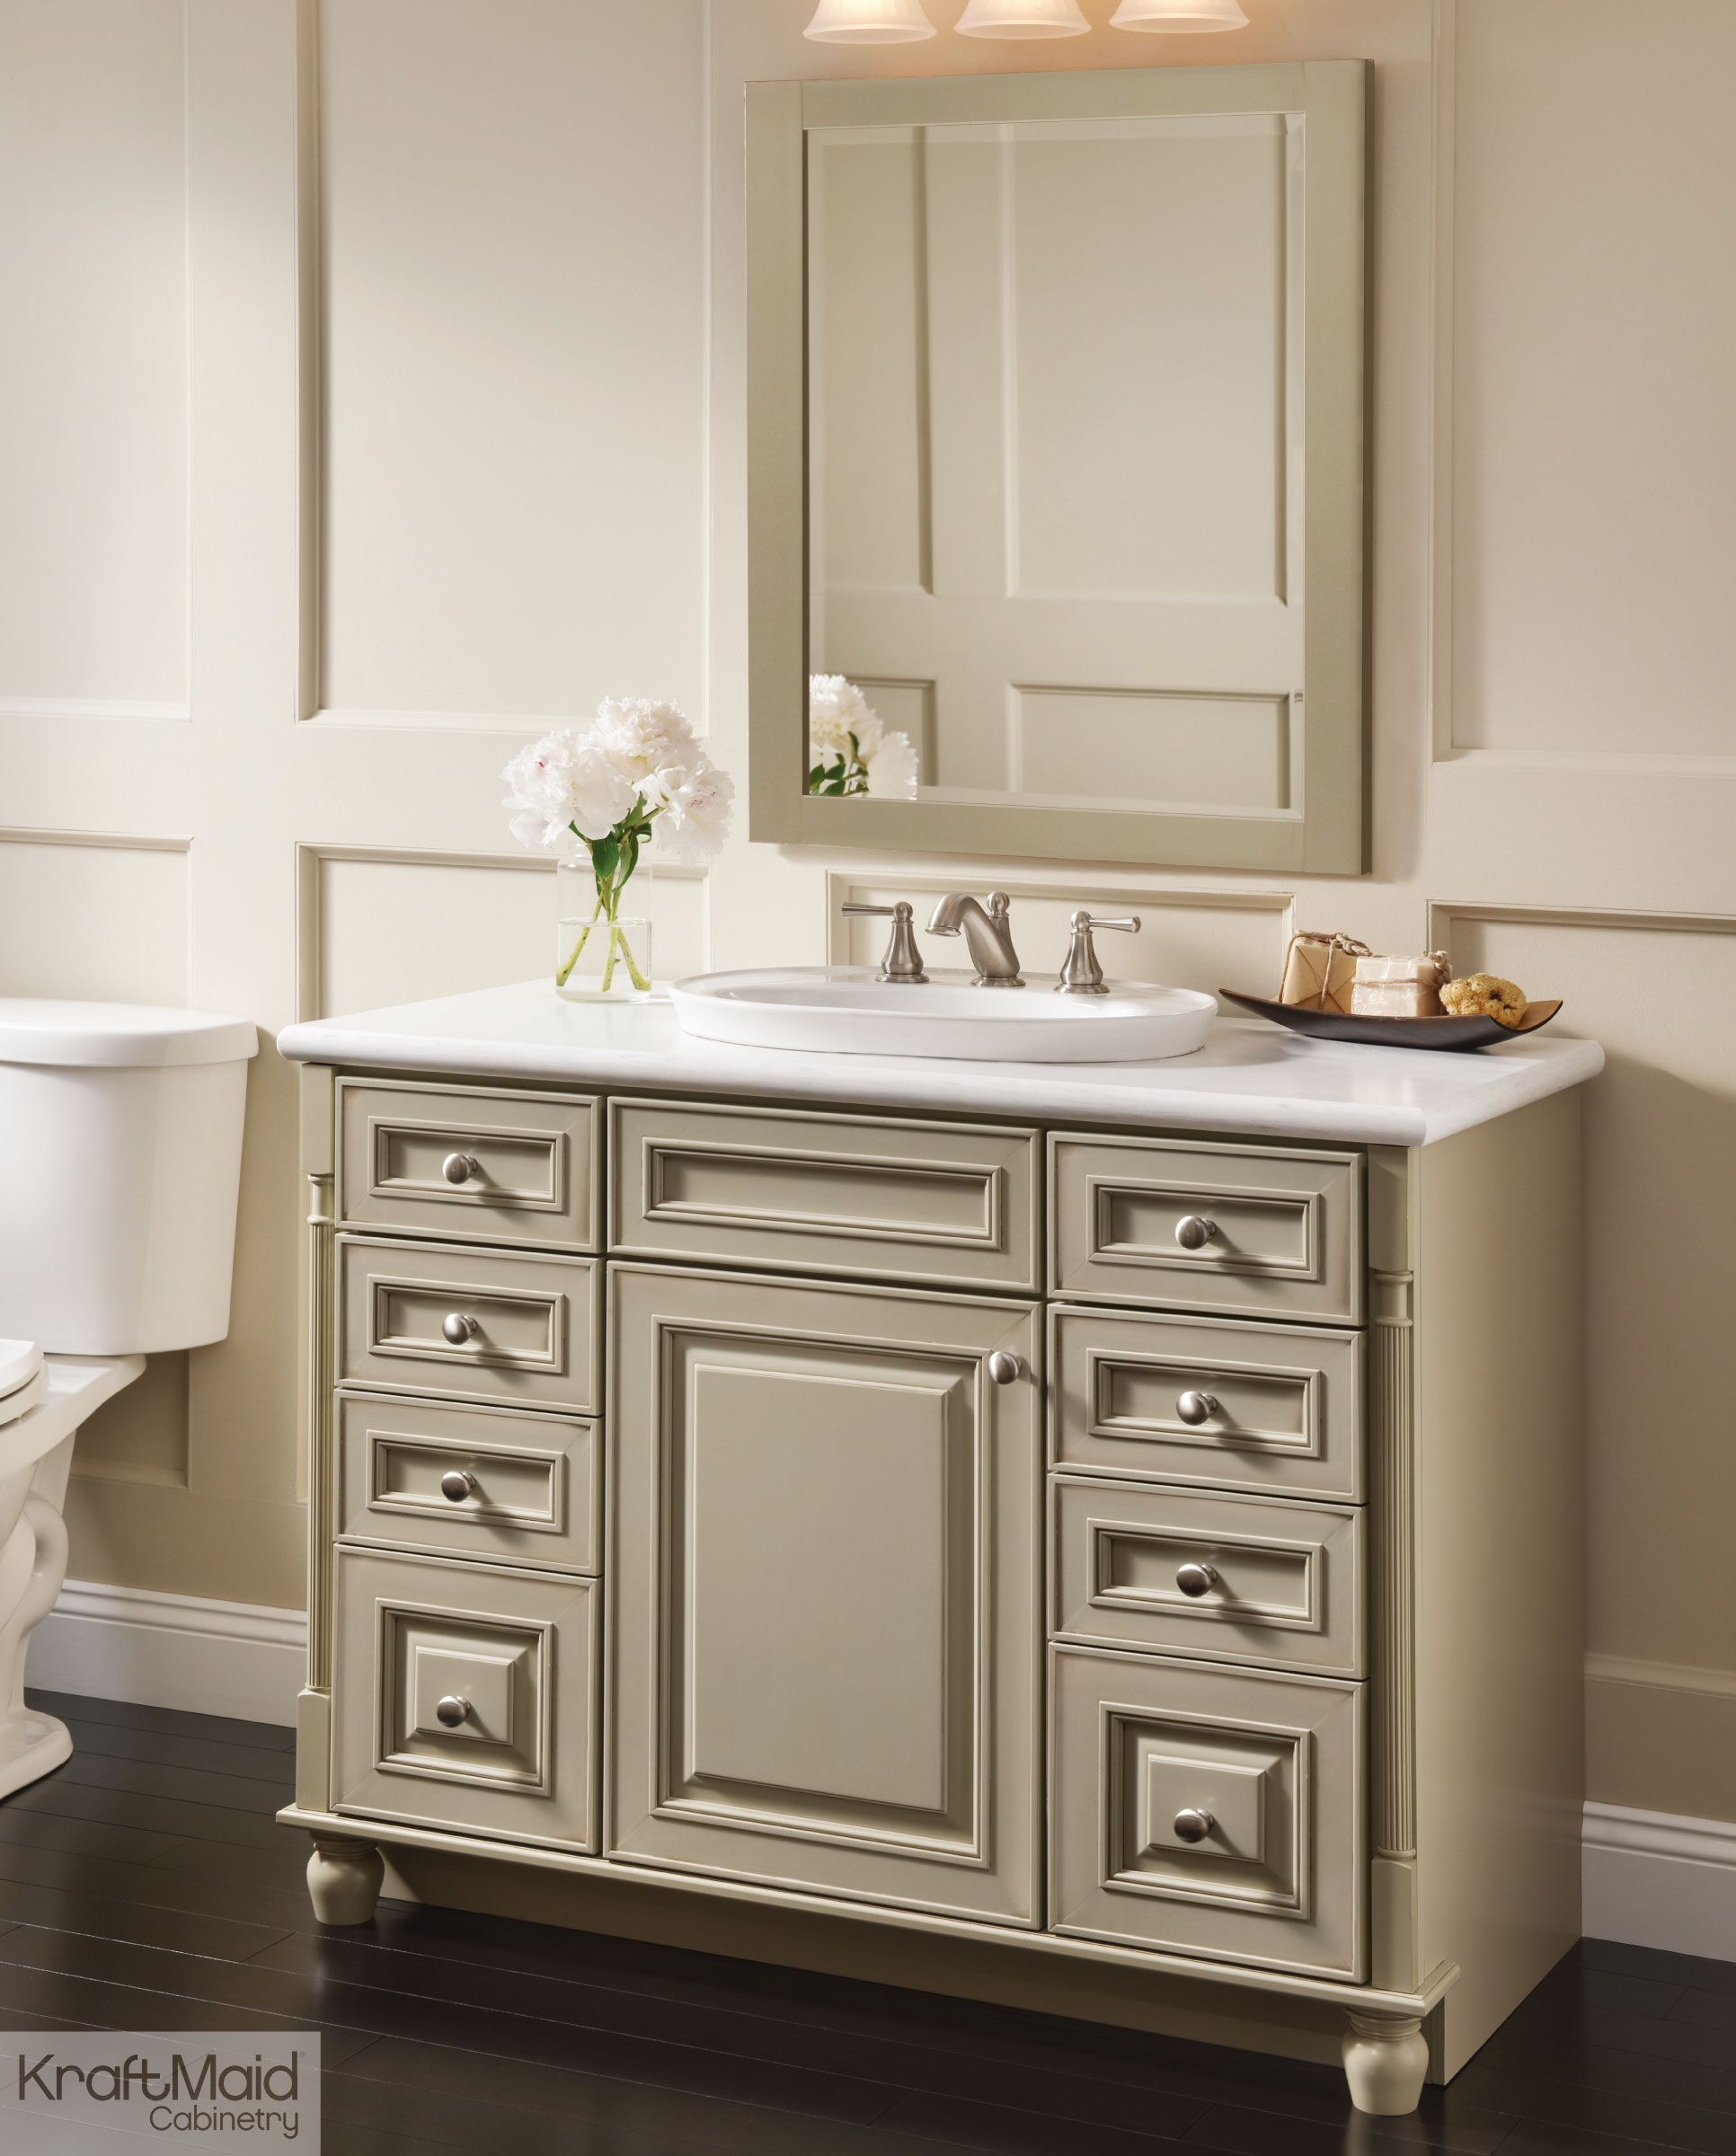 Great With A Premium Finish Of Willow With Cocoa Patina, This KraftMaid Vanity Is  The Hero